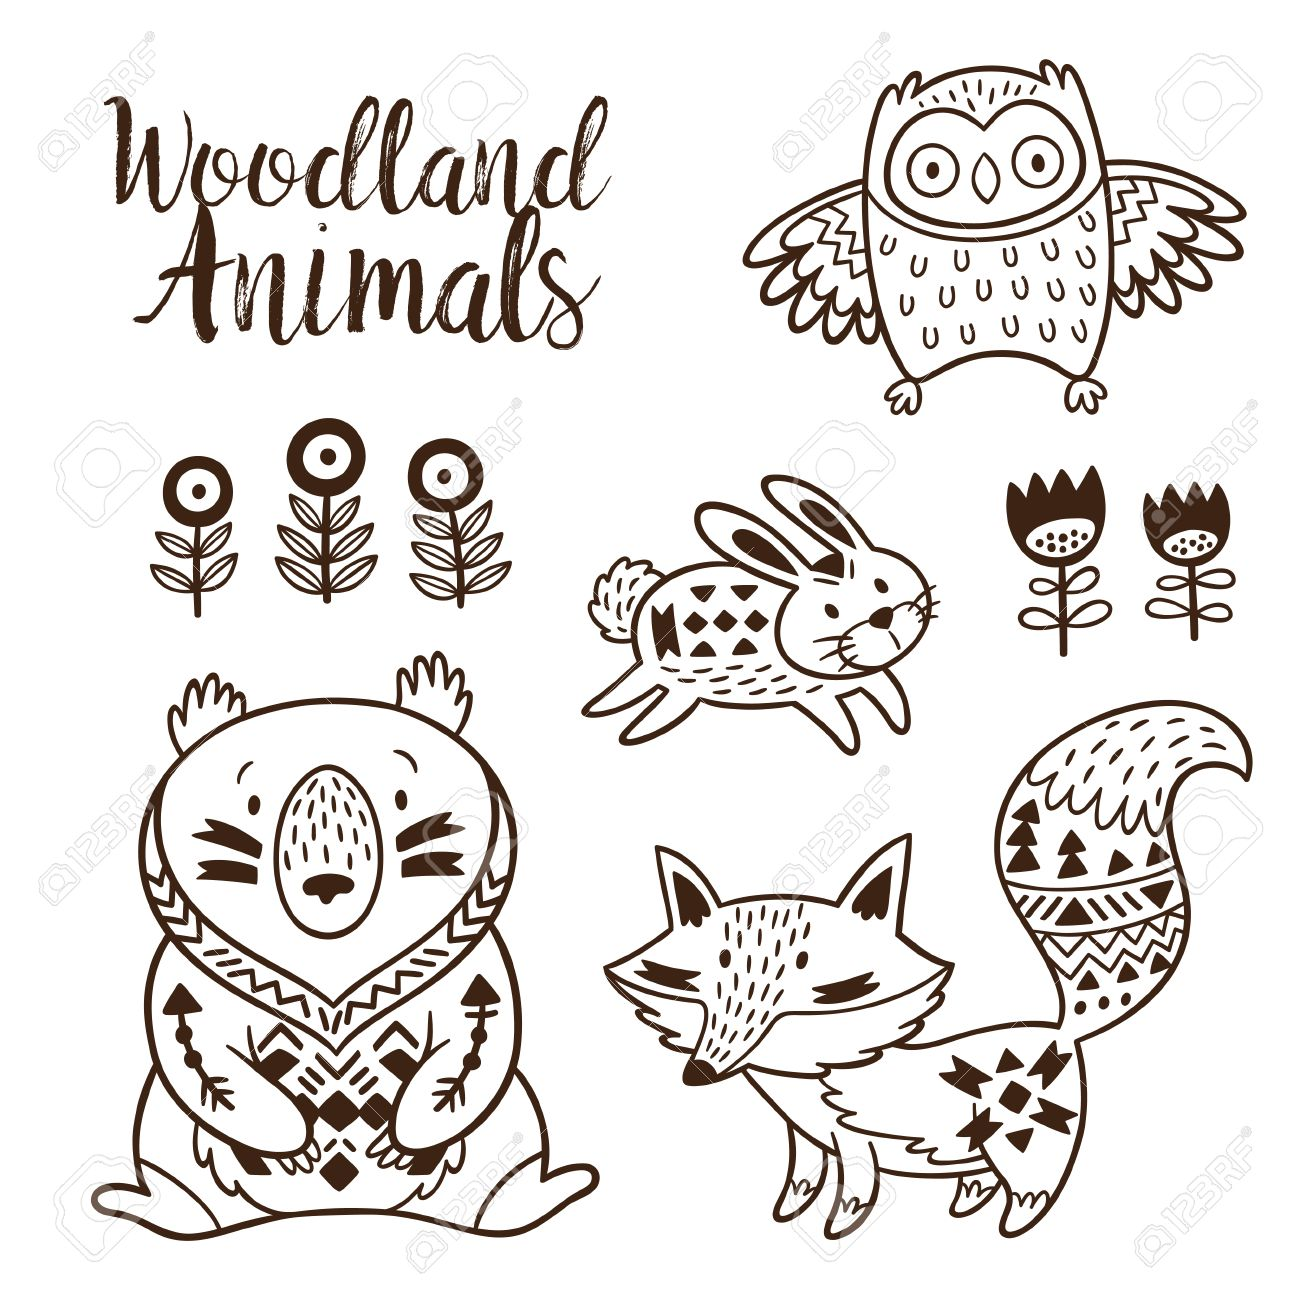 woodland animal coloring pages for kids hand drawn on a white background coloring book - Animal Coloring Pictures To Print